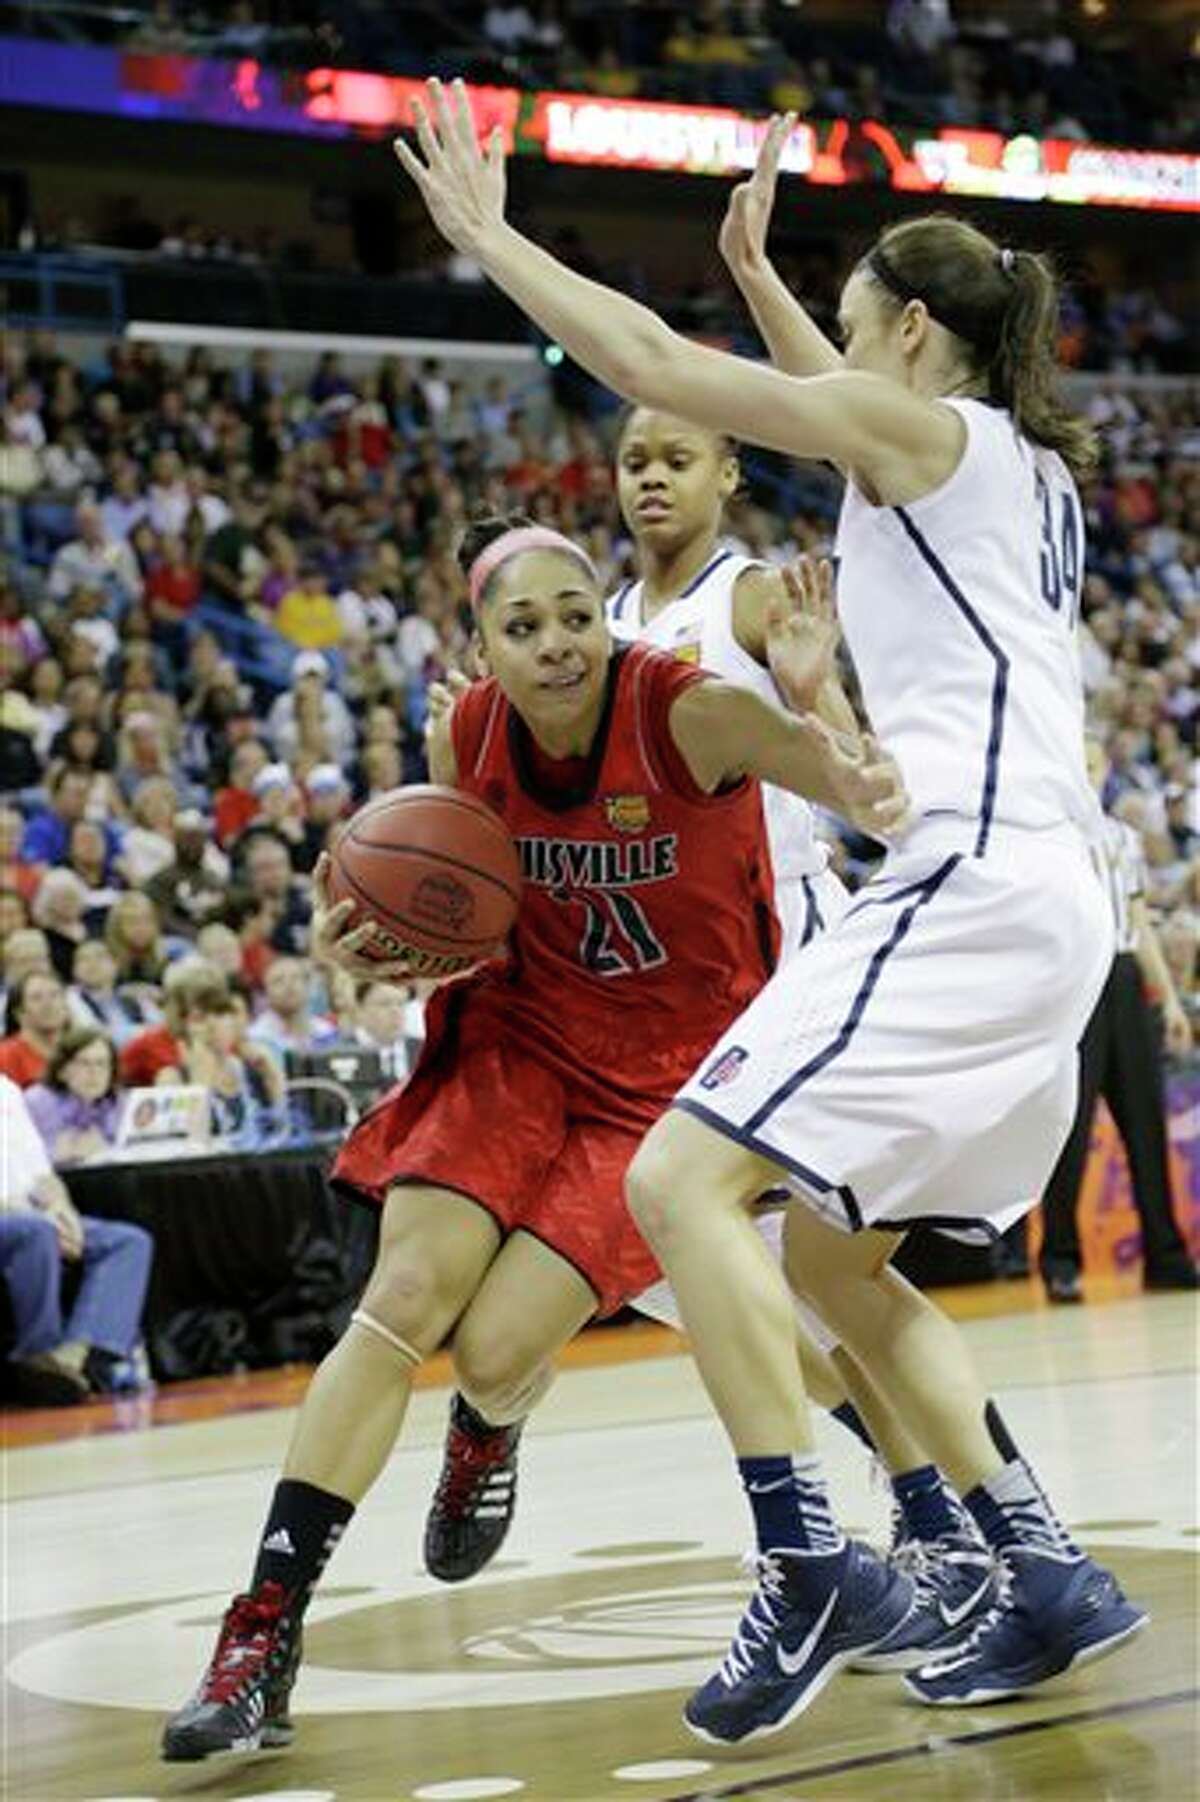 Louisville guard Bria Smith (21) drives the ball against Connecticut guard Kelly Faris (34) during first half of the national championship game of the women's Final Four of the NCAA college basketball tournament, Tuesday, April 9, 2013, in New Orleans. (AP Photo/Gerald Herbert)